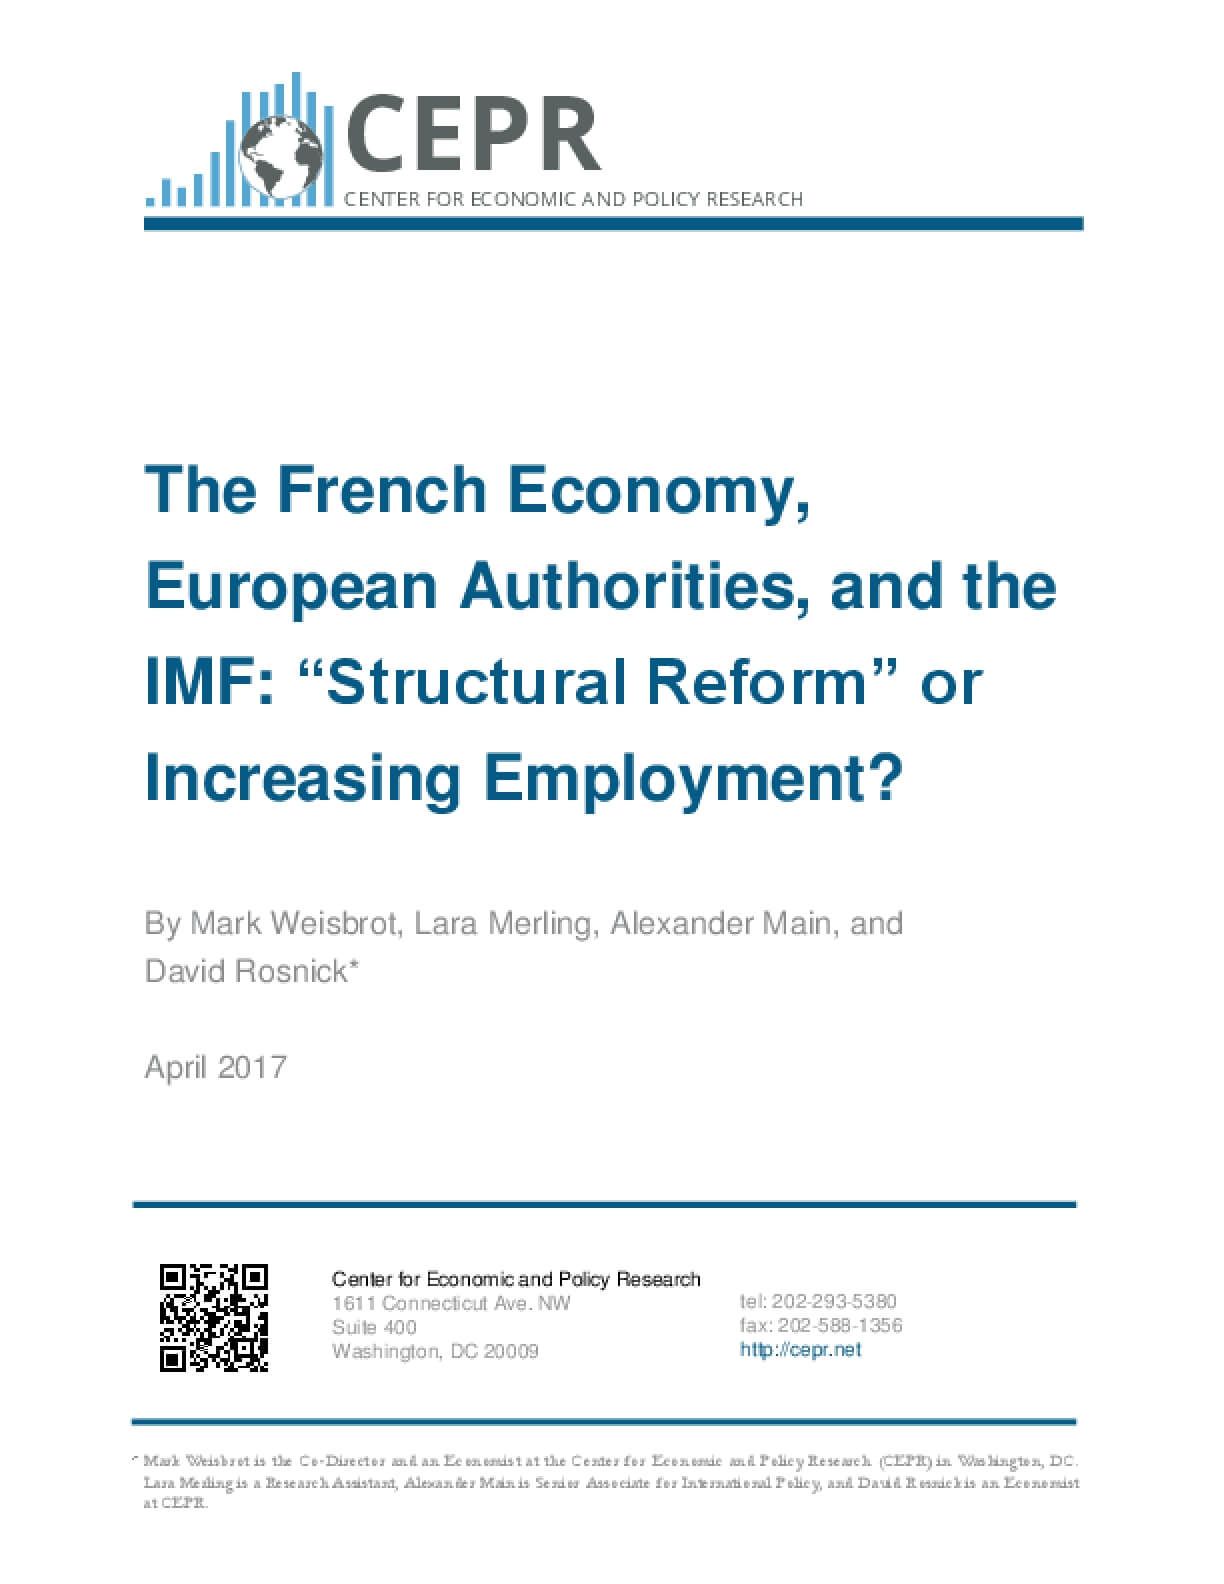 "The French Economy, European Authorities, and the IMF: ""Structural Reform"" or Increasing Employment?"